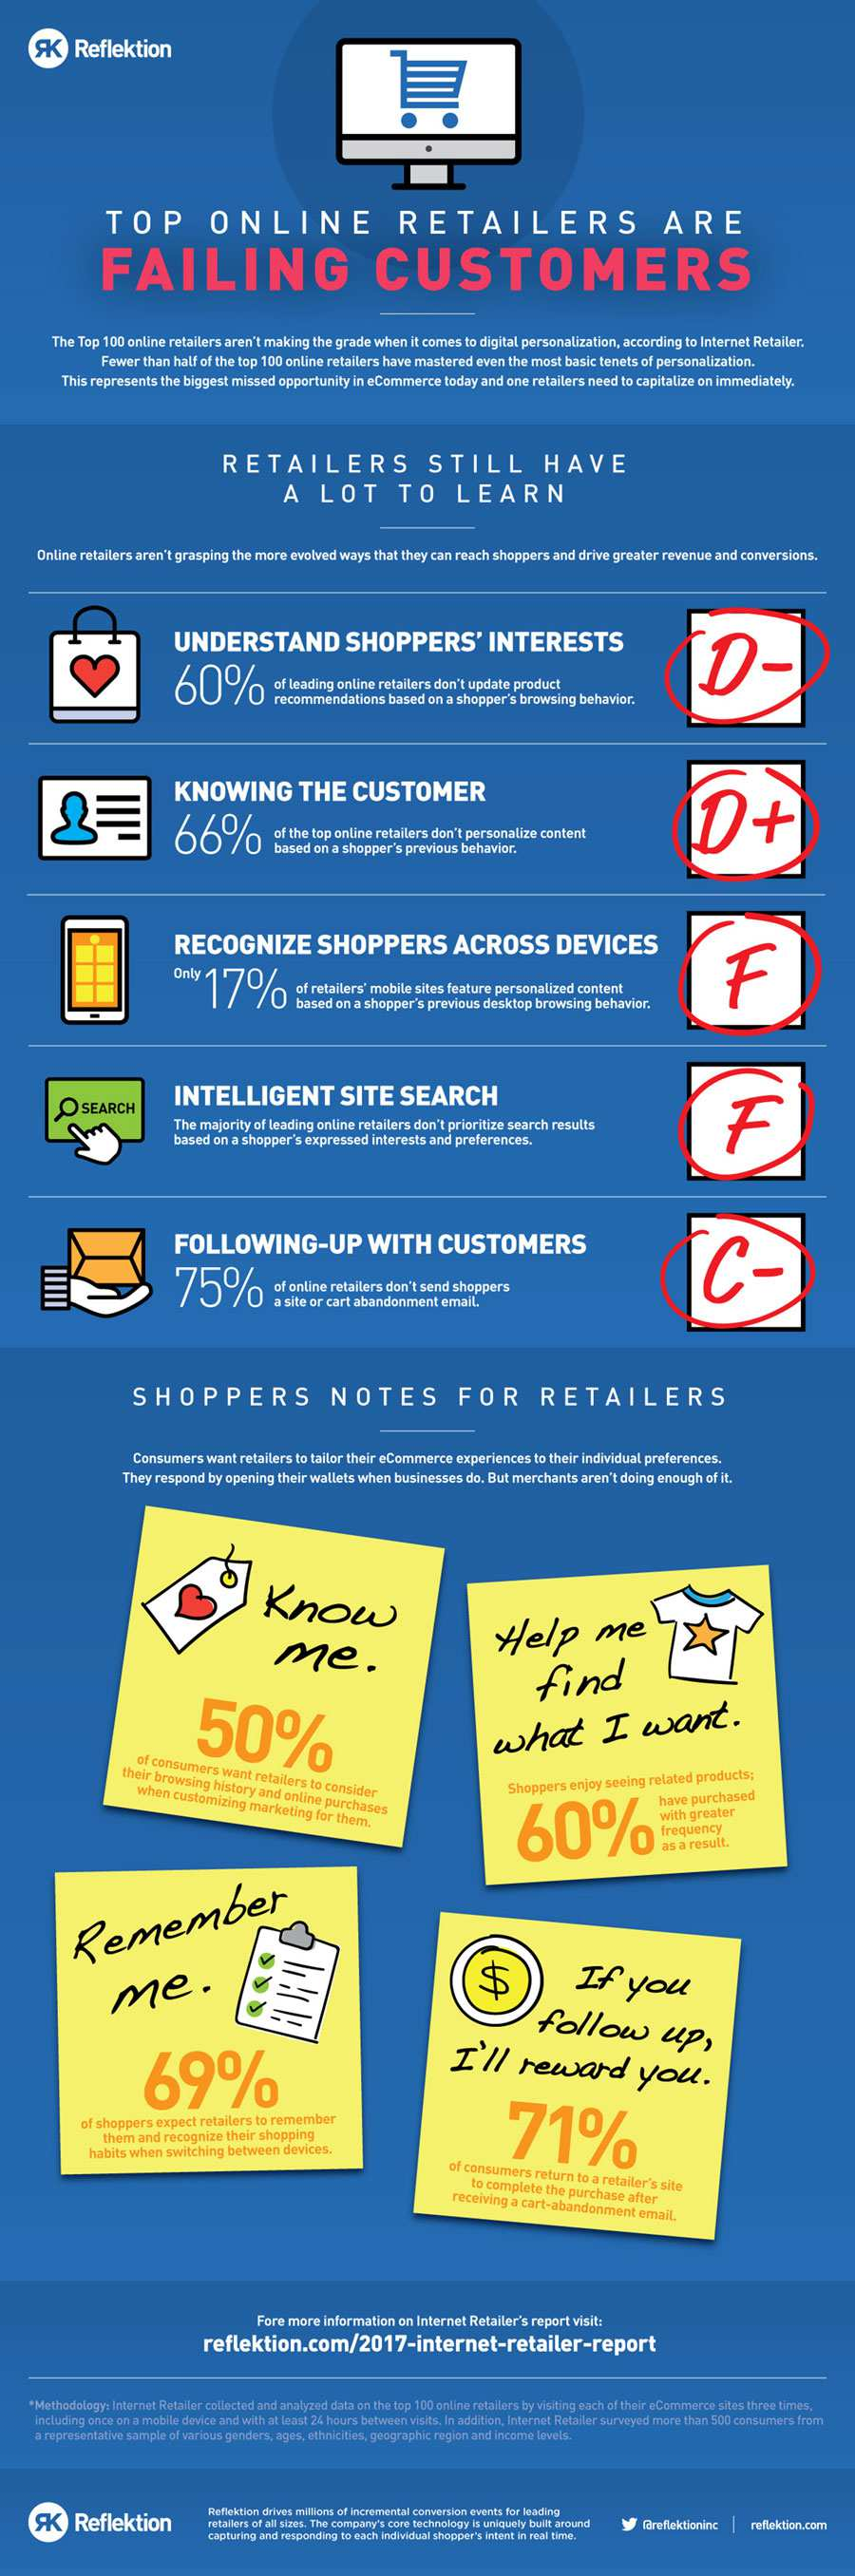 RFK_Infographic_FailingCustomers